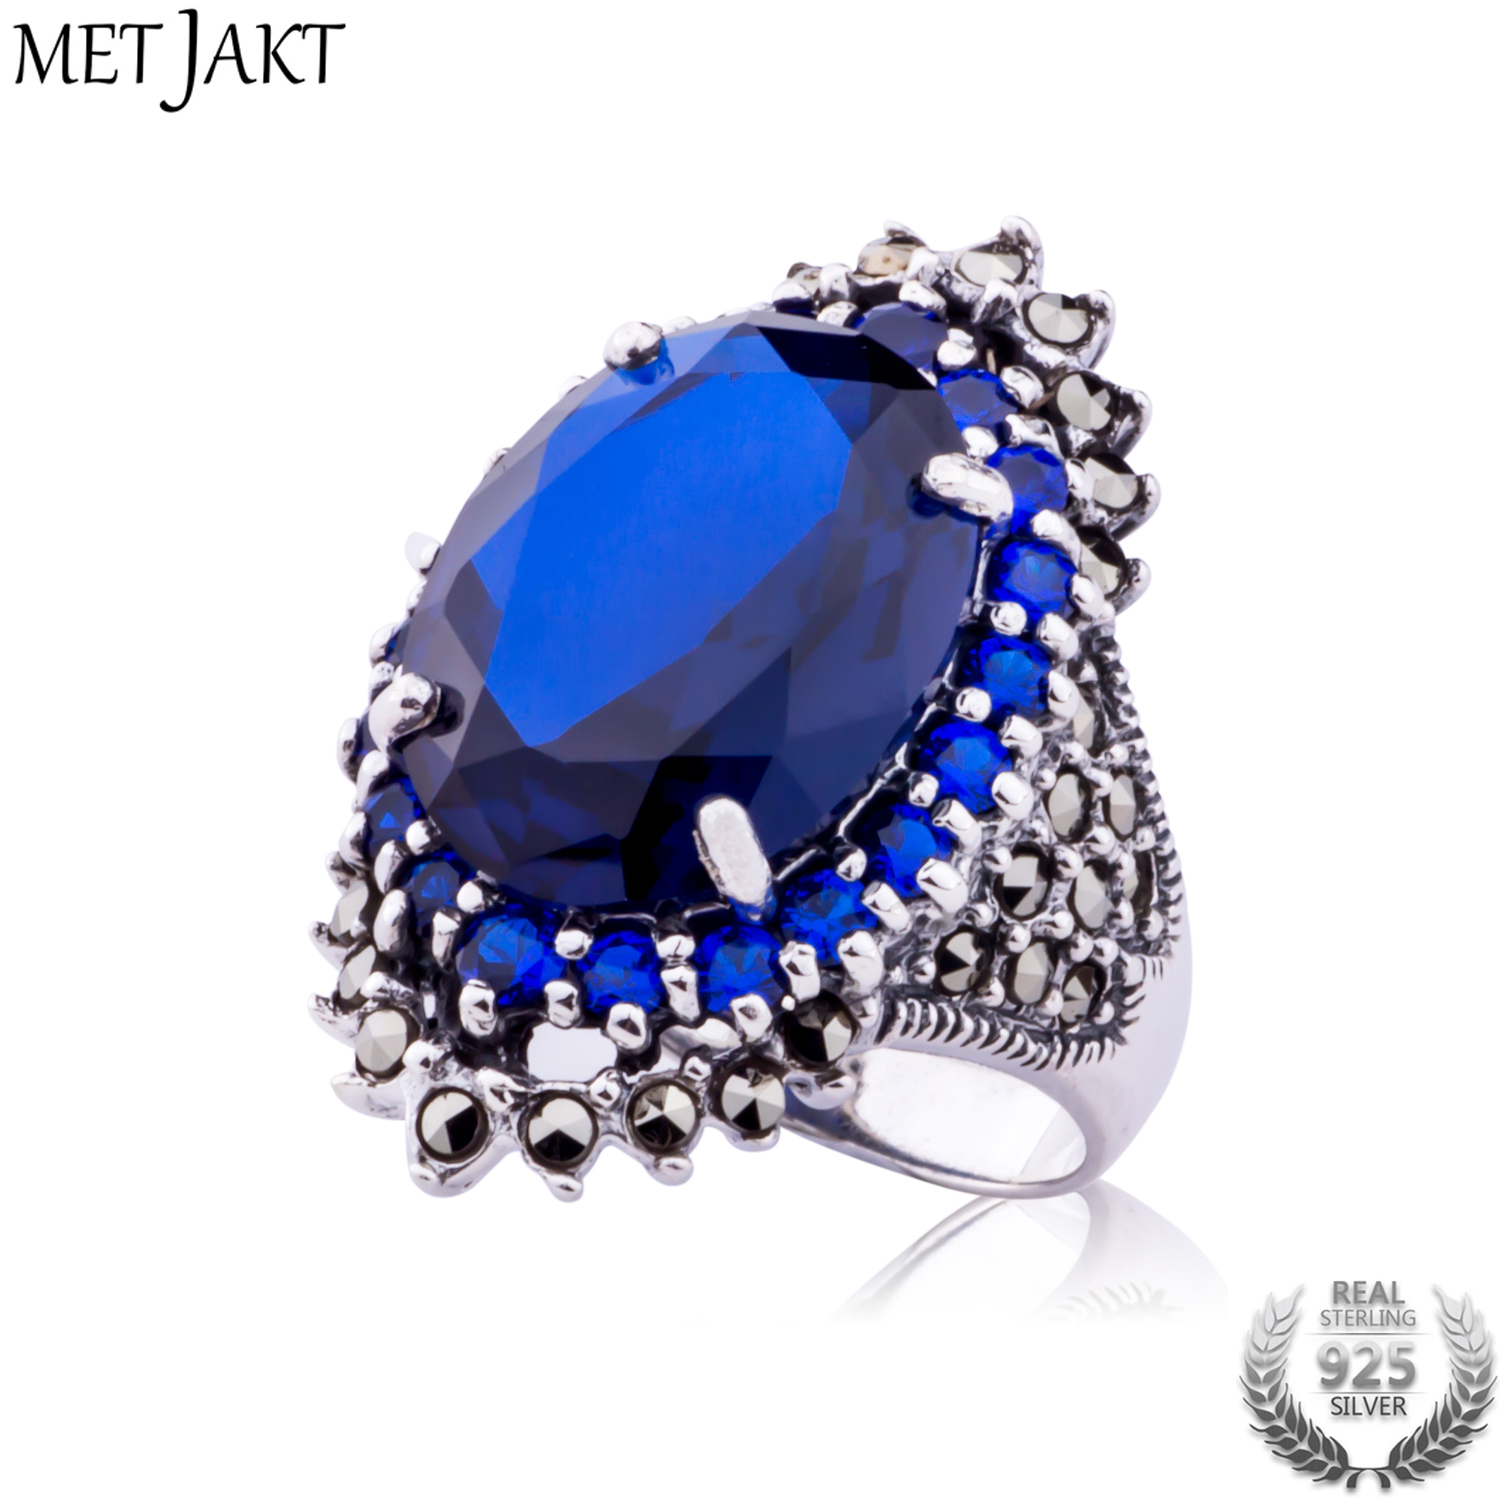 MetJakt Vintage Ethnic Sapphire Ring with Zircon Solid 925 Sterling Silver Ring for Women's Wedding Engagement Jewelry